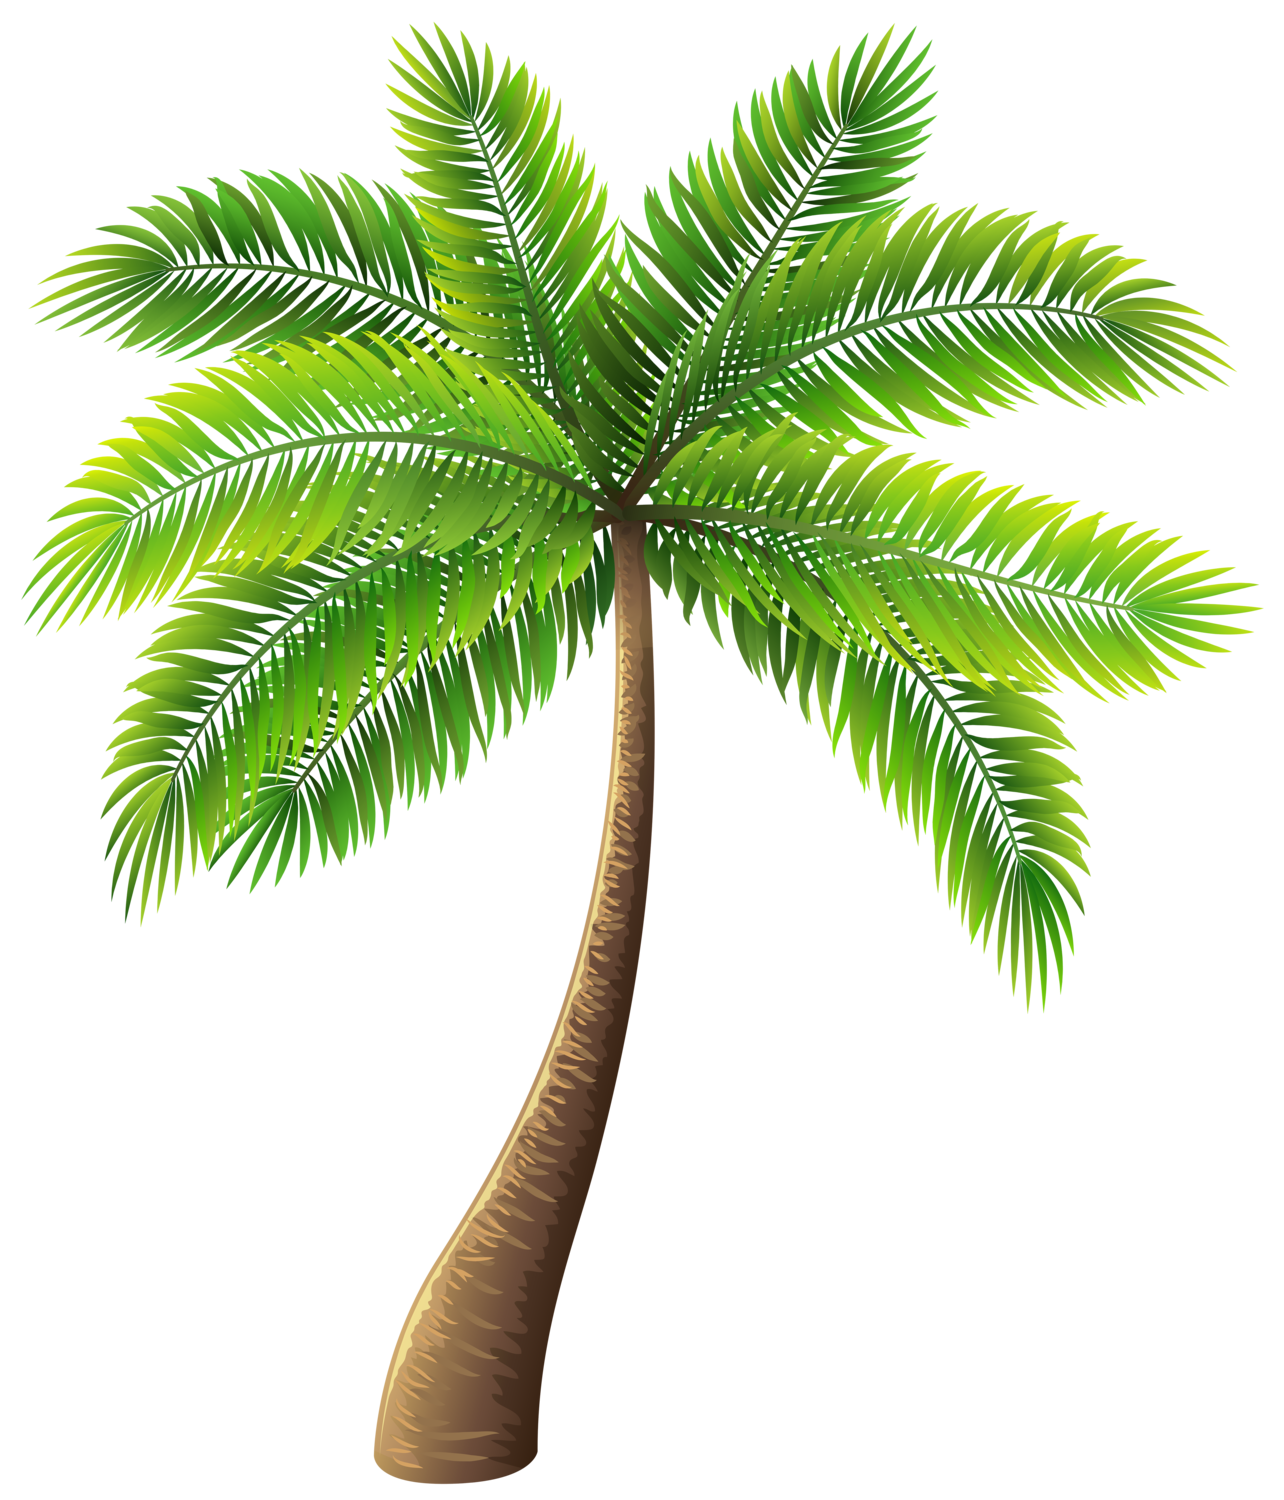 Palm Tree Clipart, Palm Tree.PNG Images.